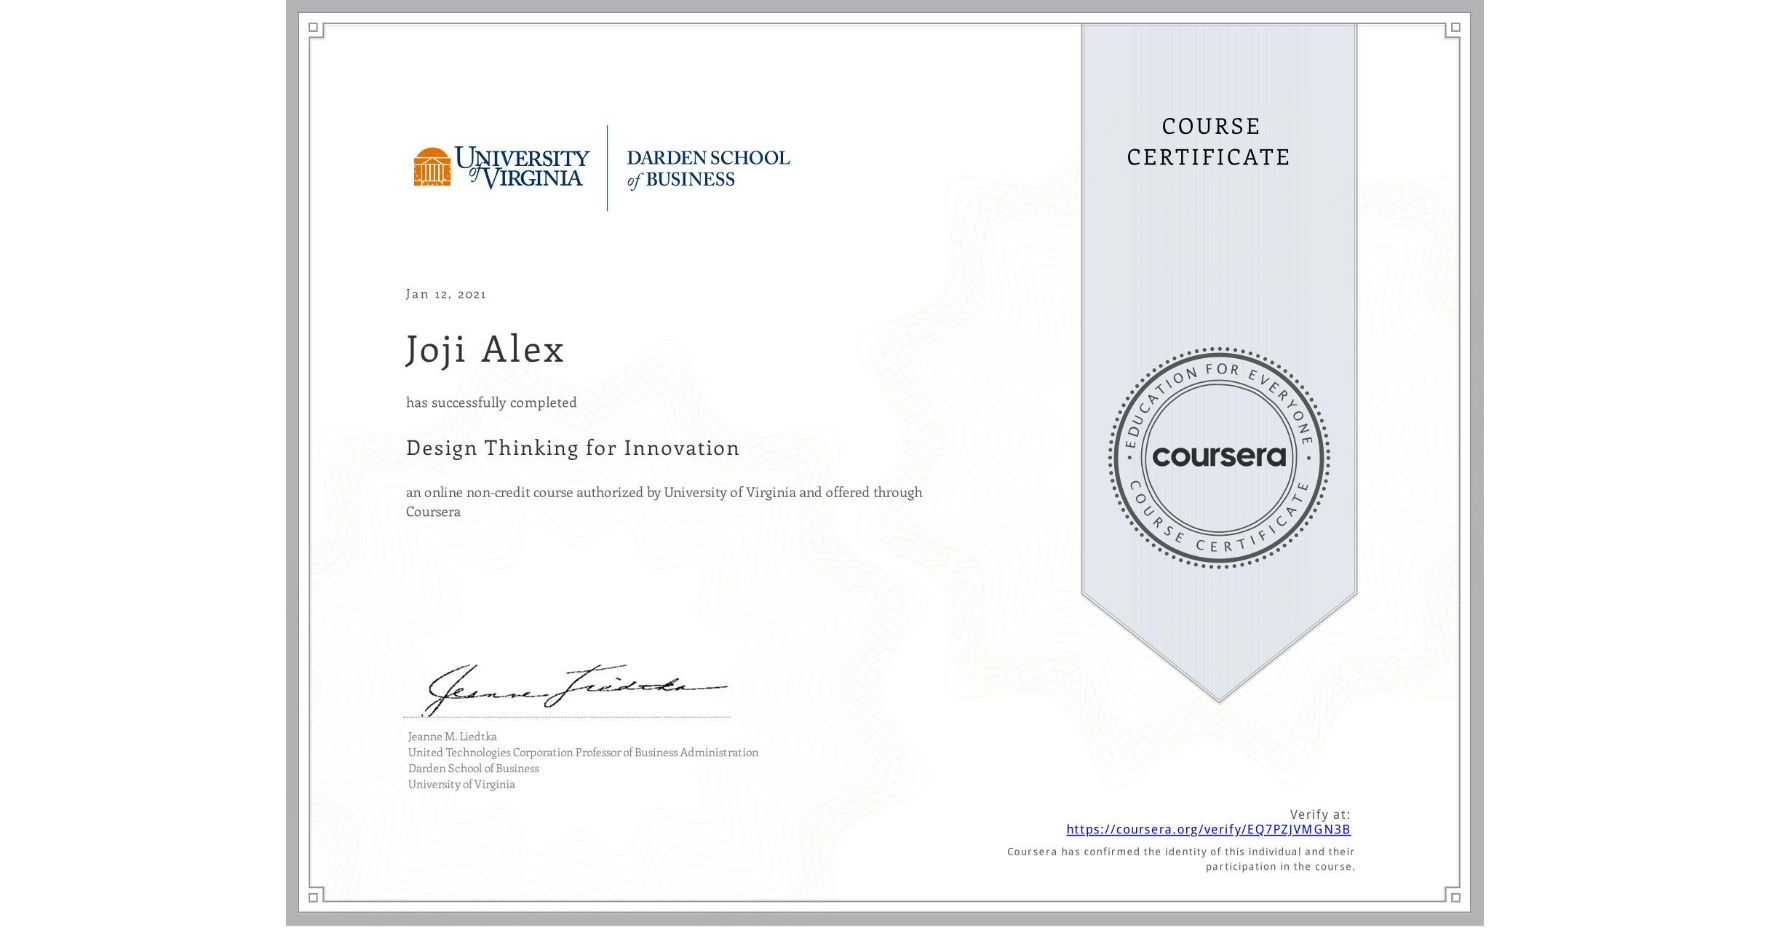 View certificate for Joji Alex, Design Thinking for Innovation, an online non-credit course authorized by University of Virginia and offered through Coursera